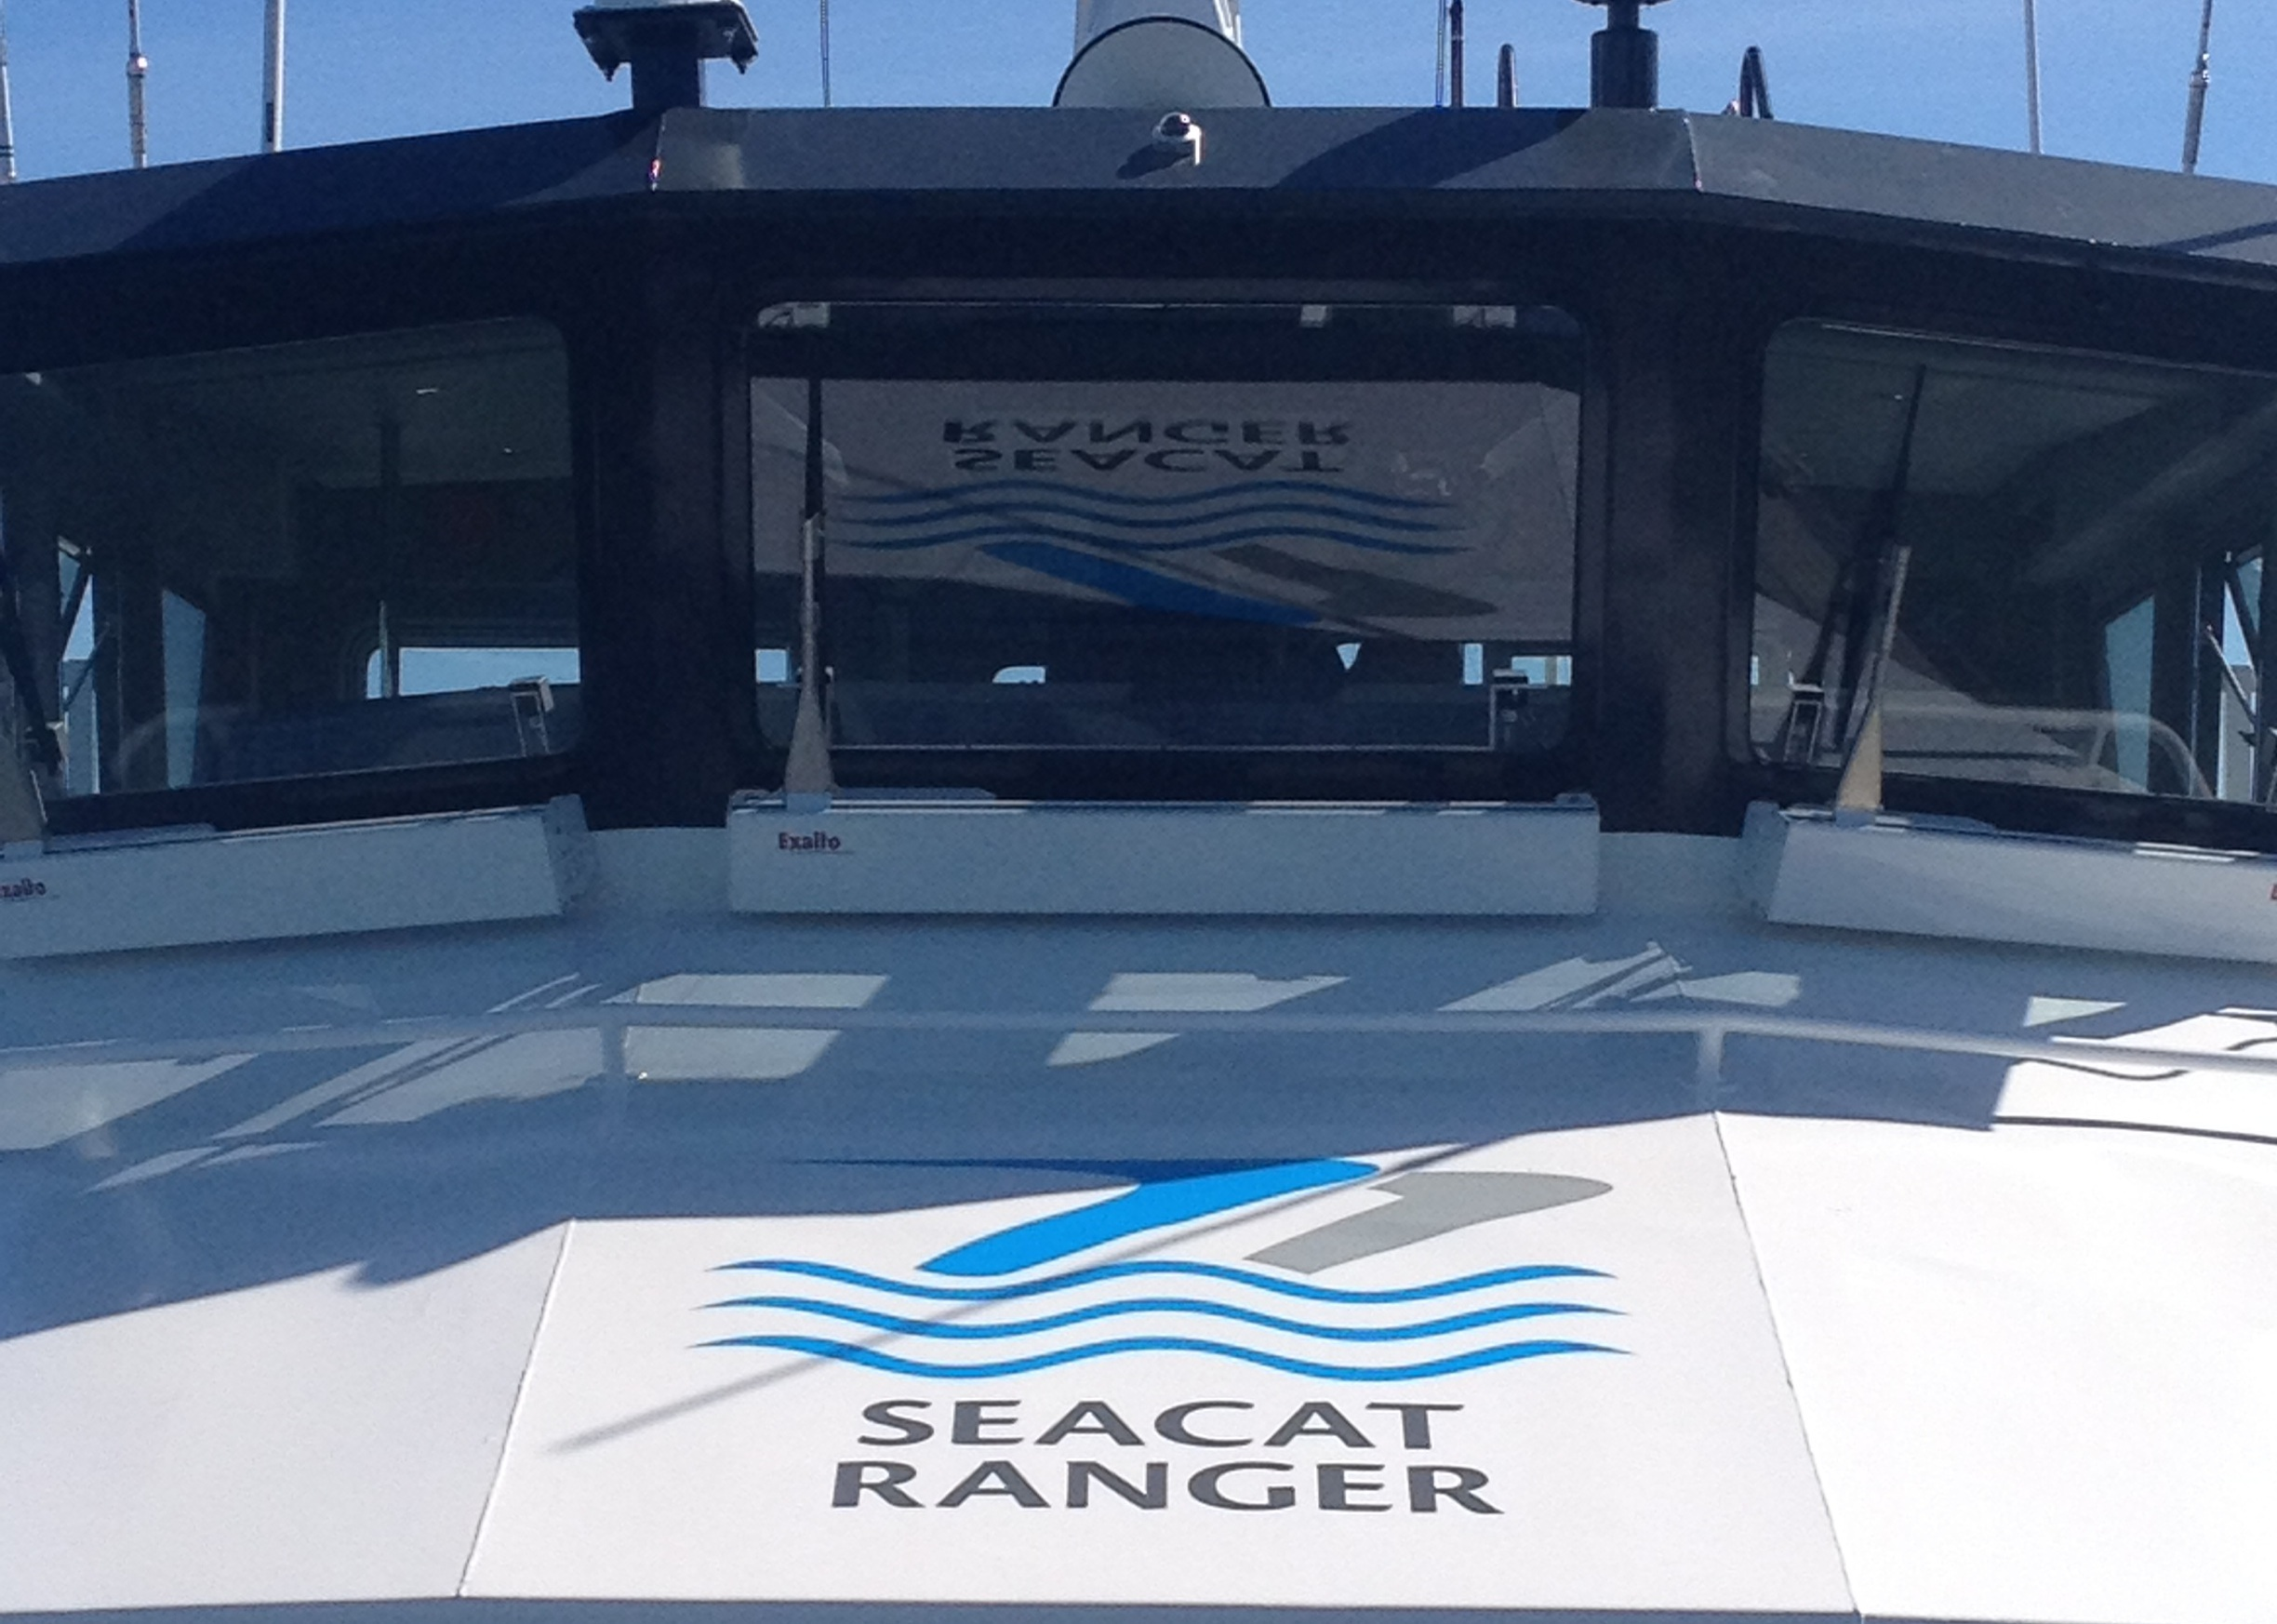 Seacat Ranger will be a taking charge of operations for Galloper Wind Farm/